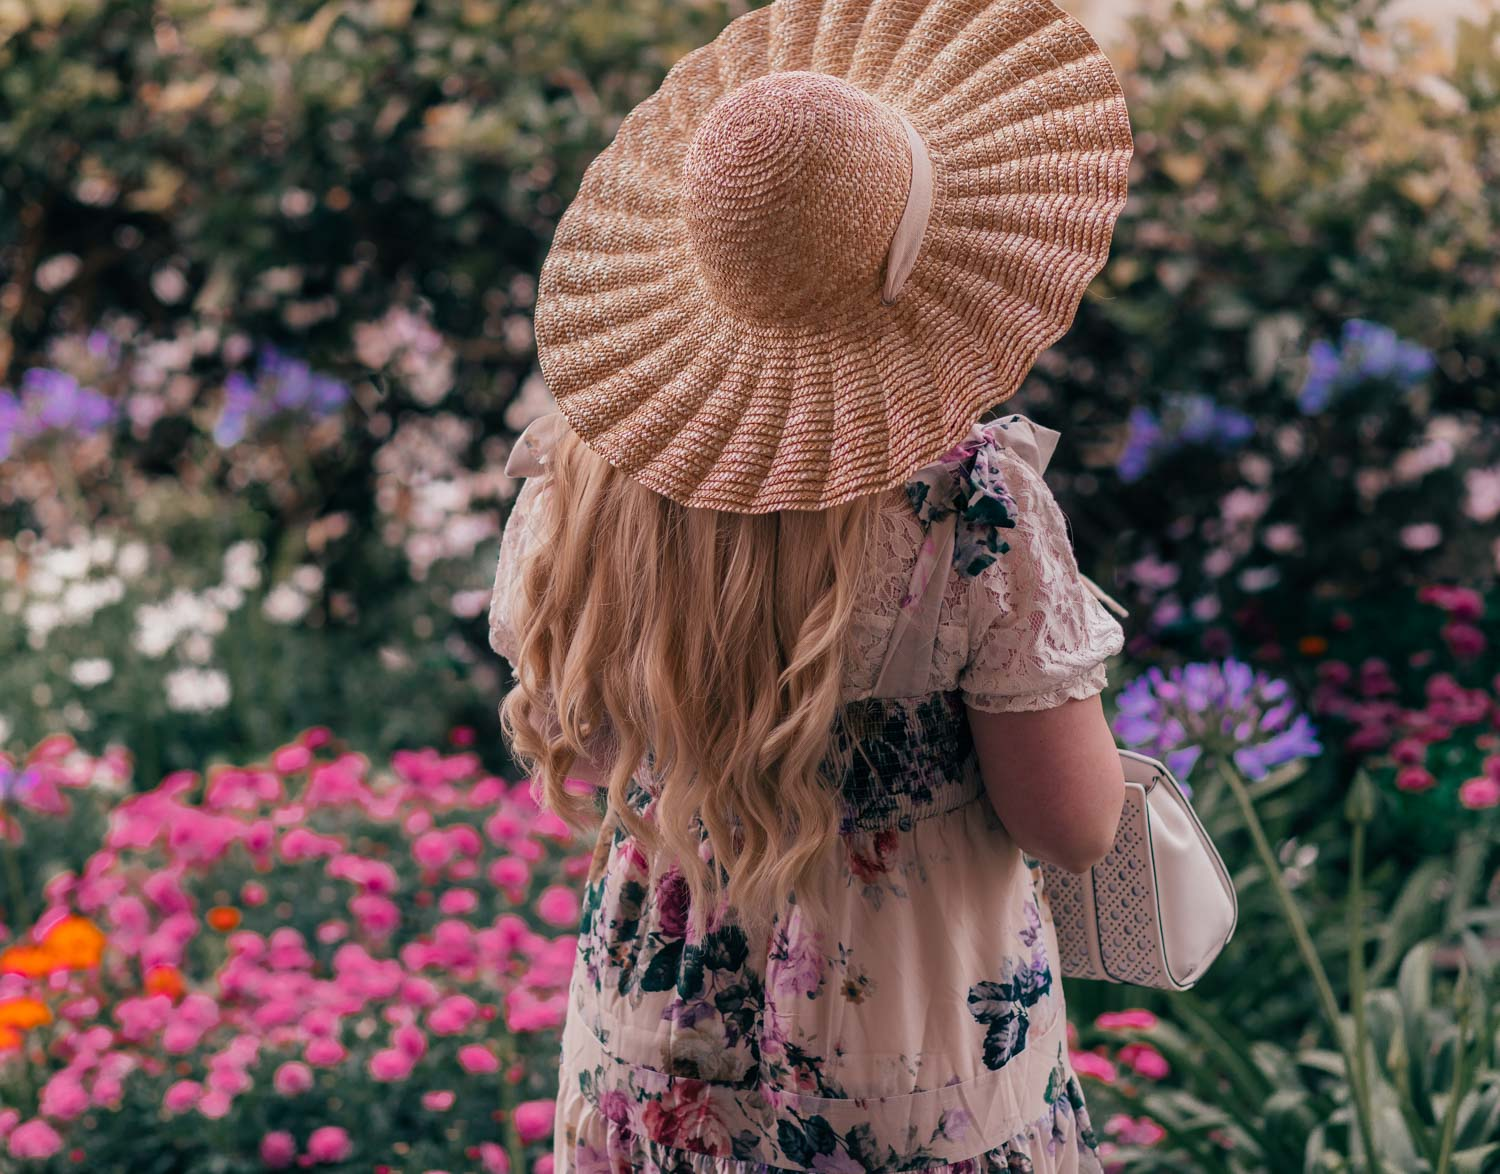 Feminine fashion blogger Elizabeth Hugen of Lizzie in Lace shares 3 Feminine Summer Hair Accessories to Wear Now including this gorgeous straw scalloped Lack of Color hat